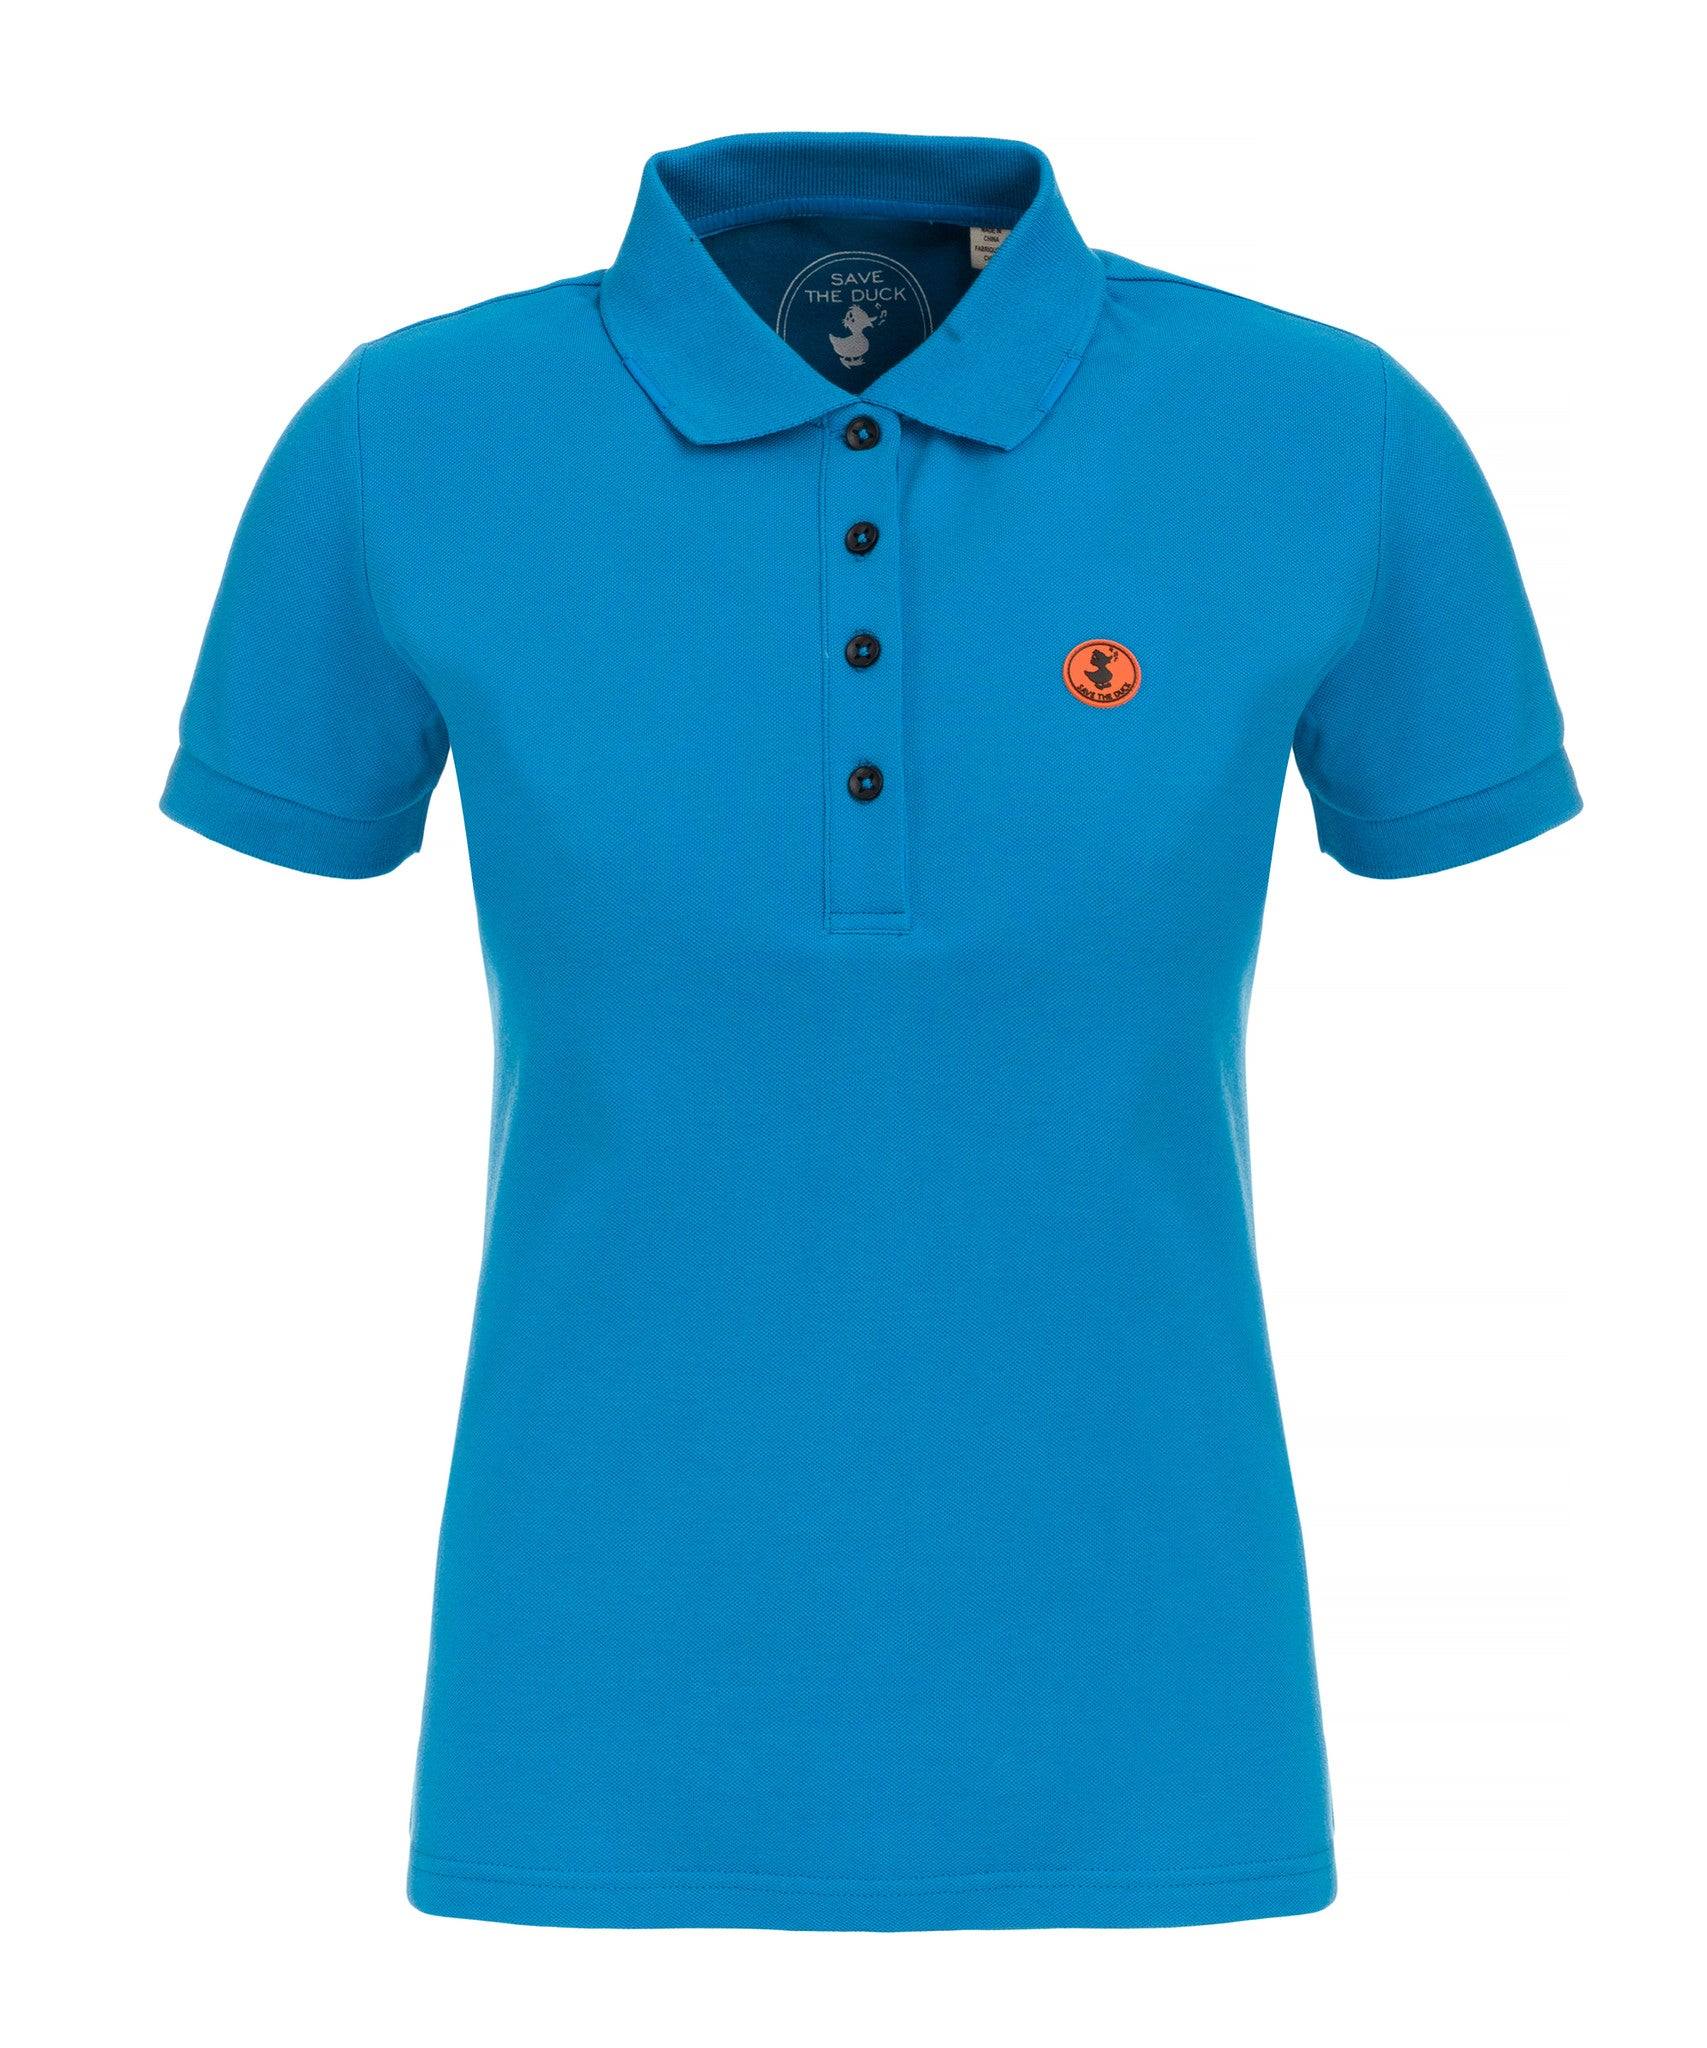 Save The Duck Women S Polo In Ocean Blue Save The Duck